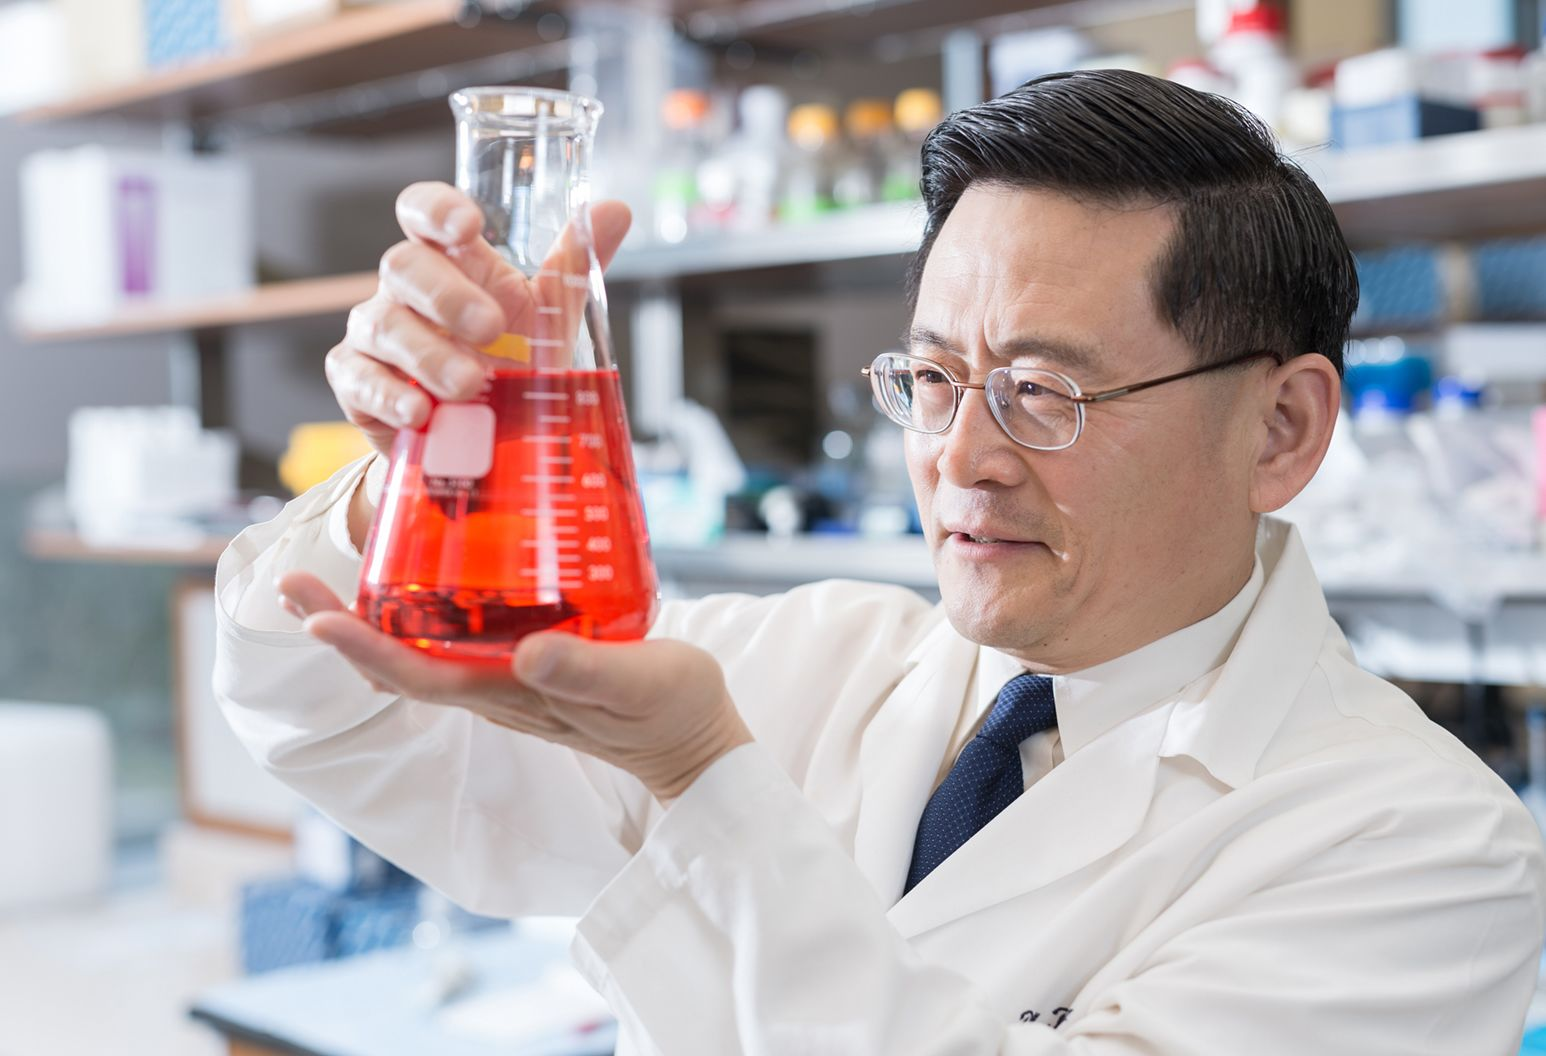 Researcher Ping Wang is examining a beaker with red liquid in it.